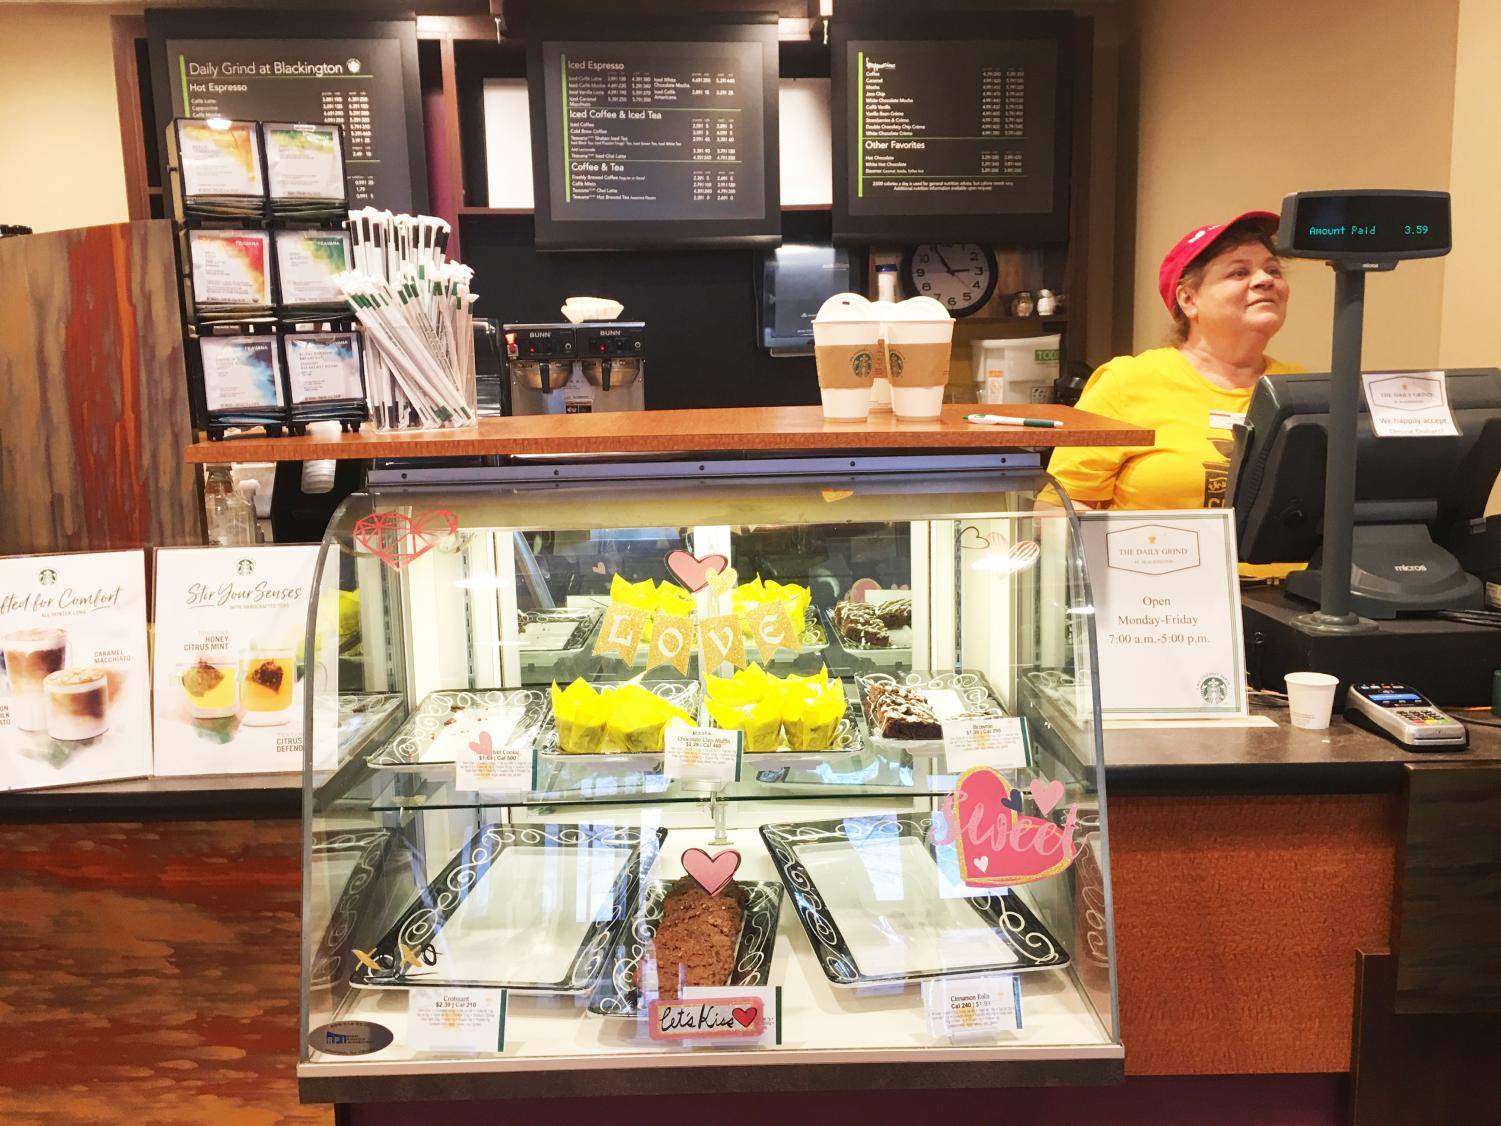 The Daily Grind employee Diane Venet said daytime staff member Debbie Casteel put Valentine's Day stickers about three weeks ago on the food stop's shpwcase glass.